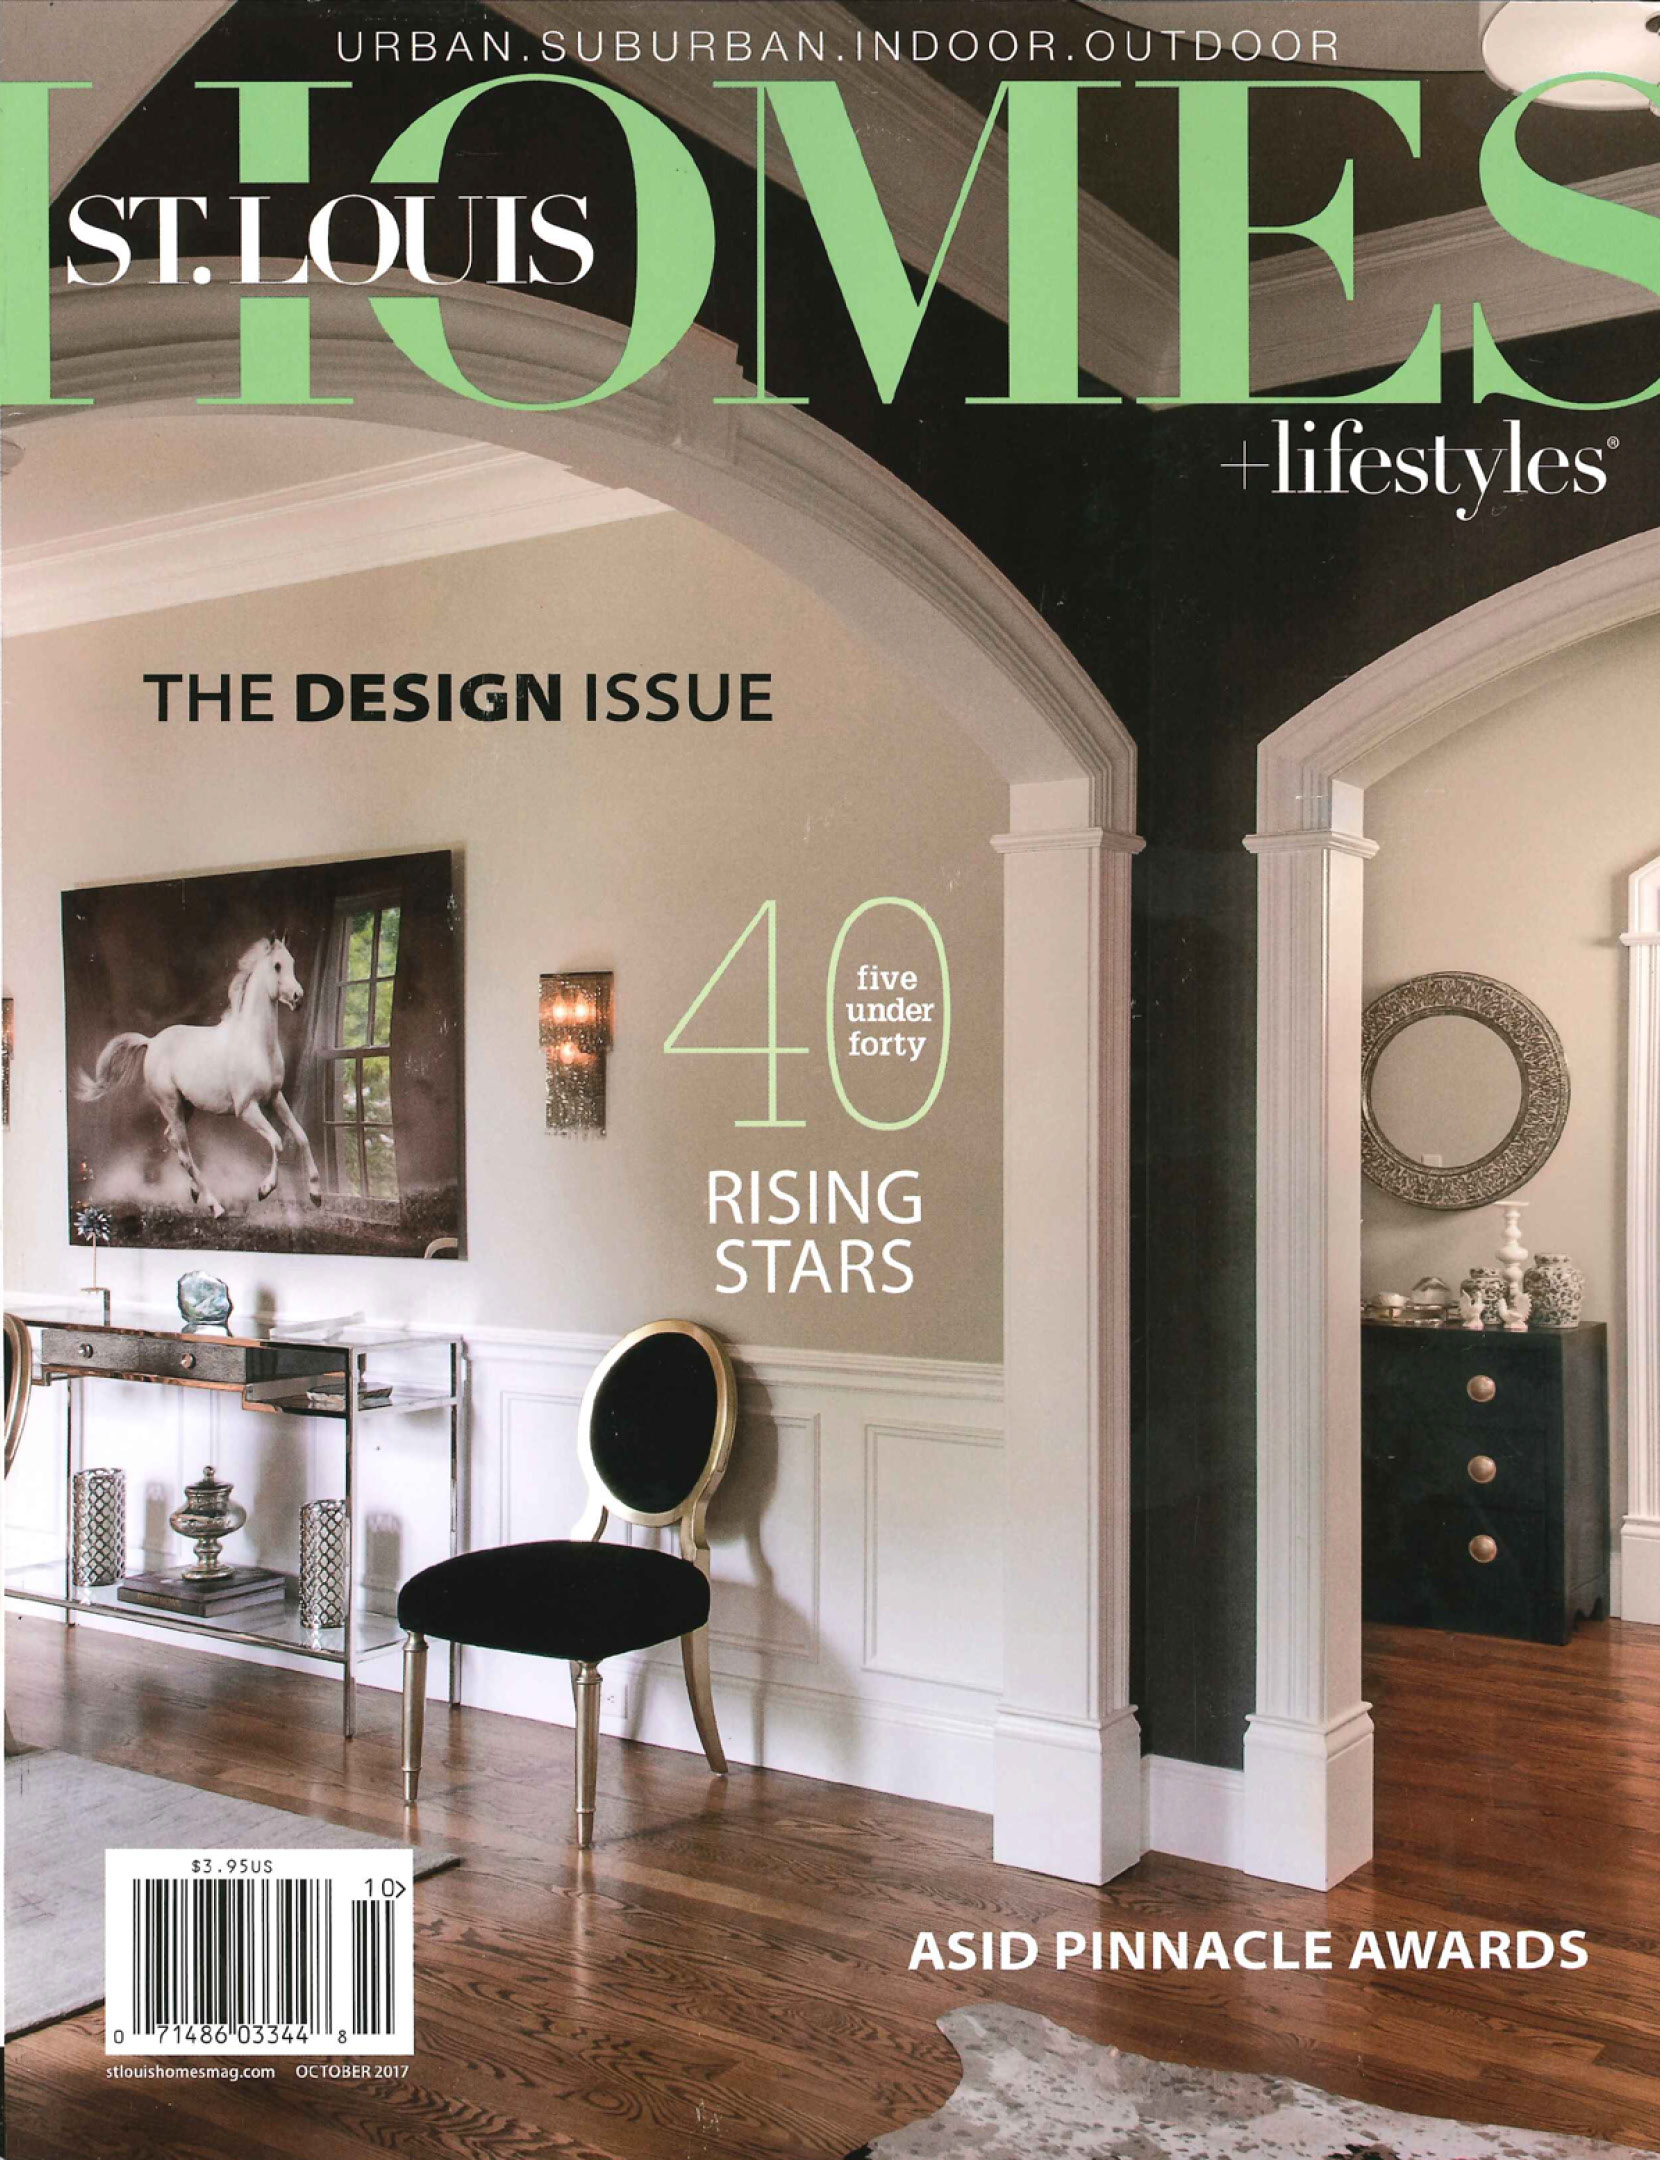 St. Louis Homes + Lifestyles, October 2017